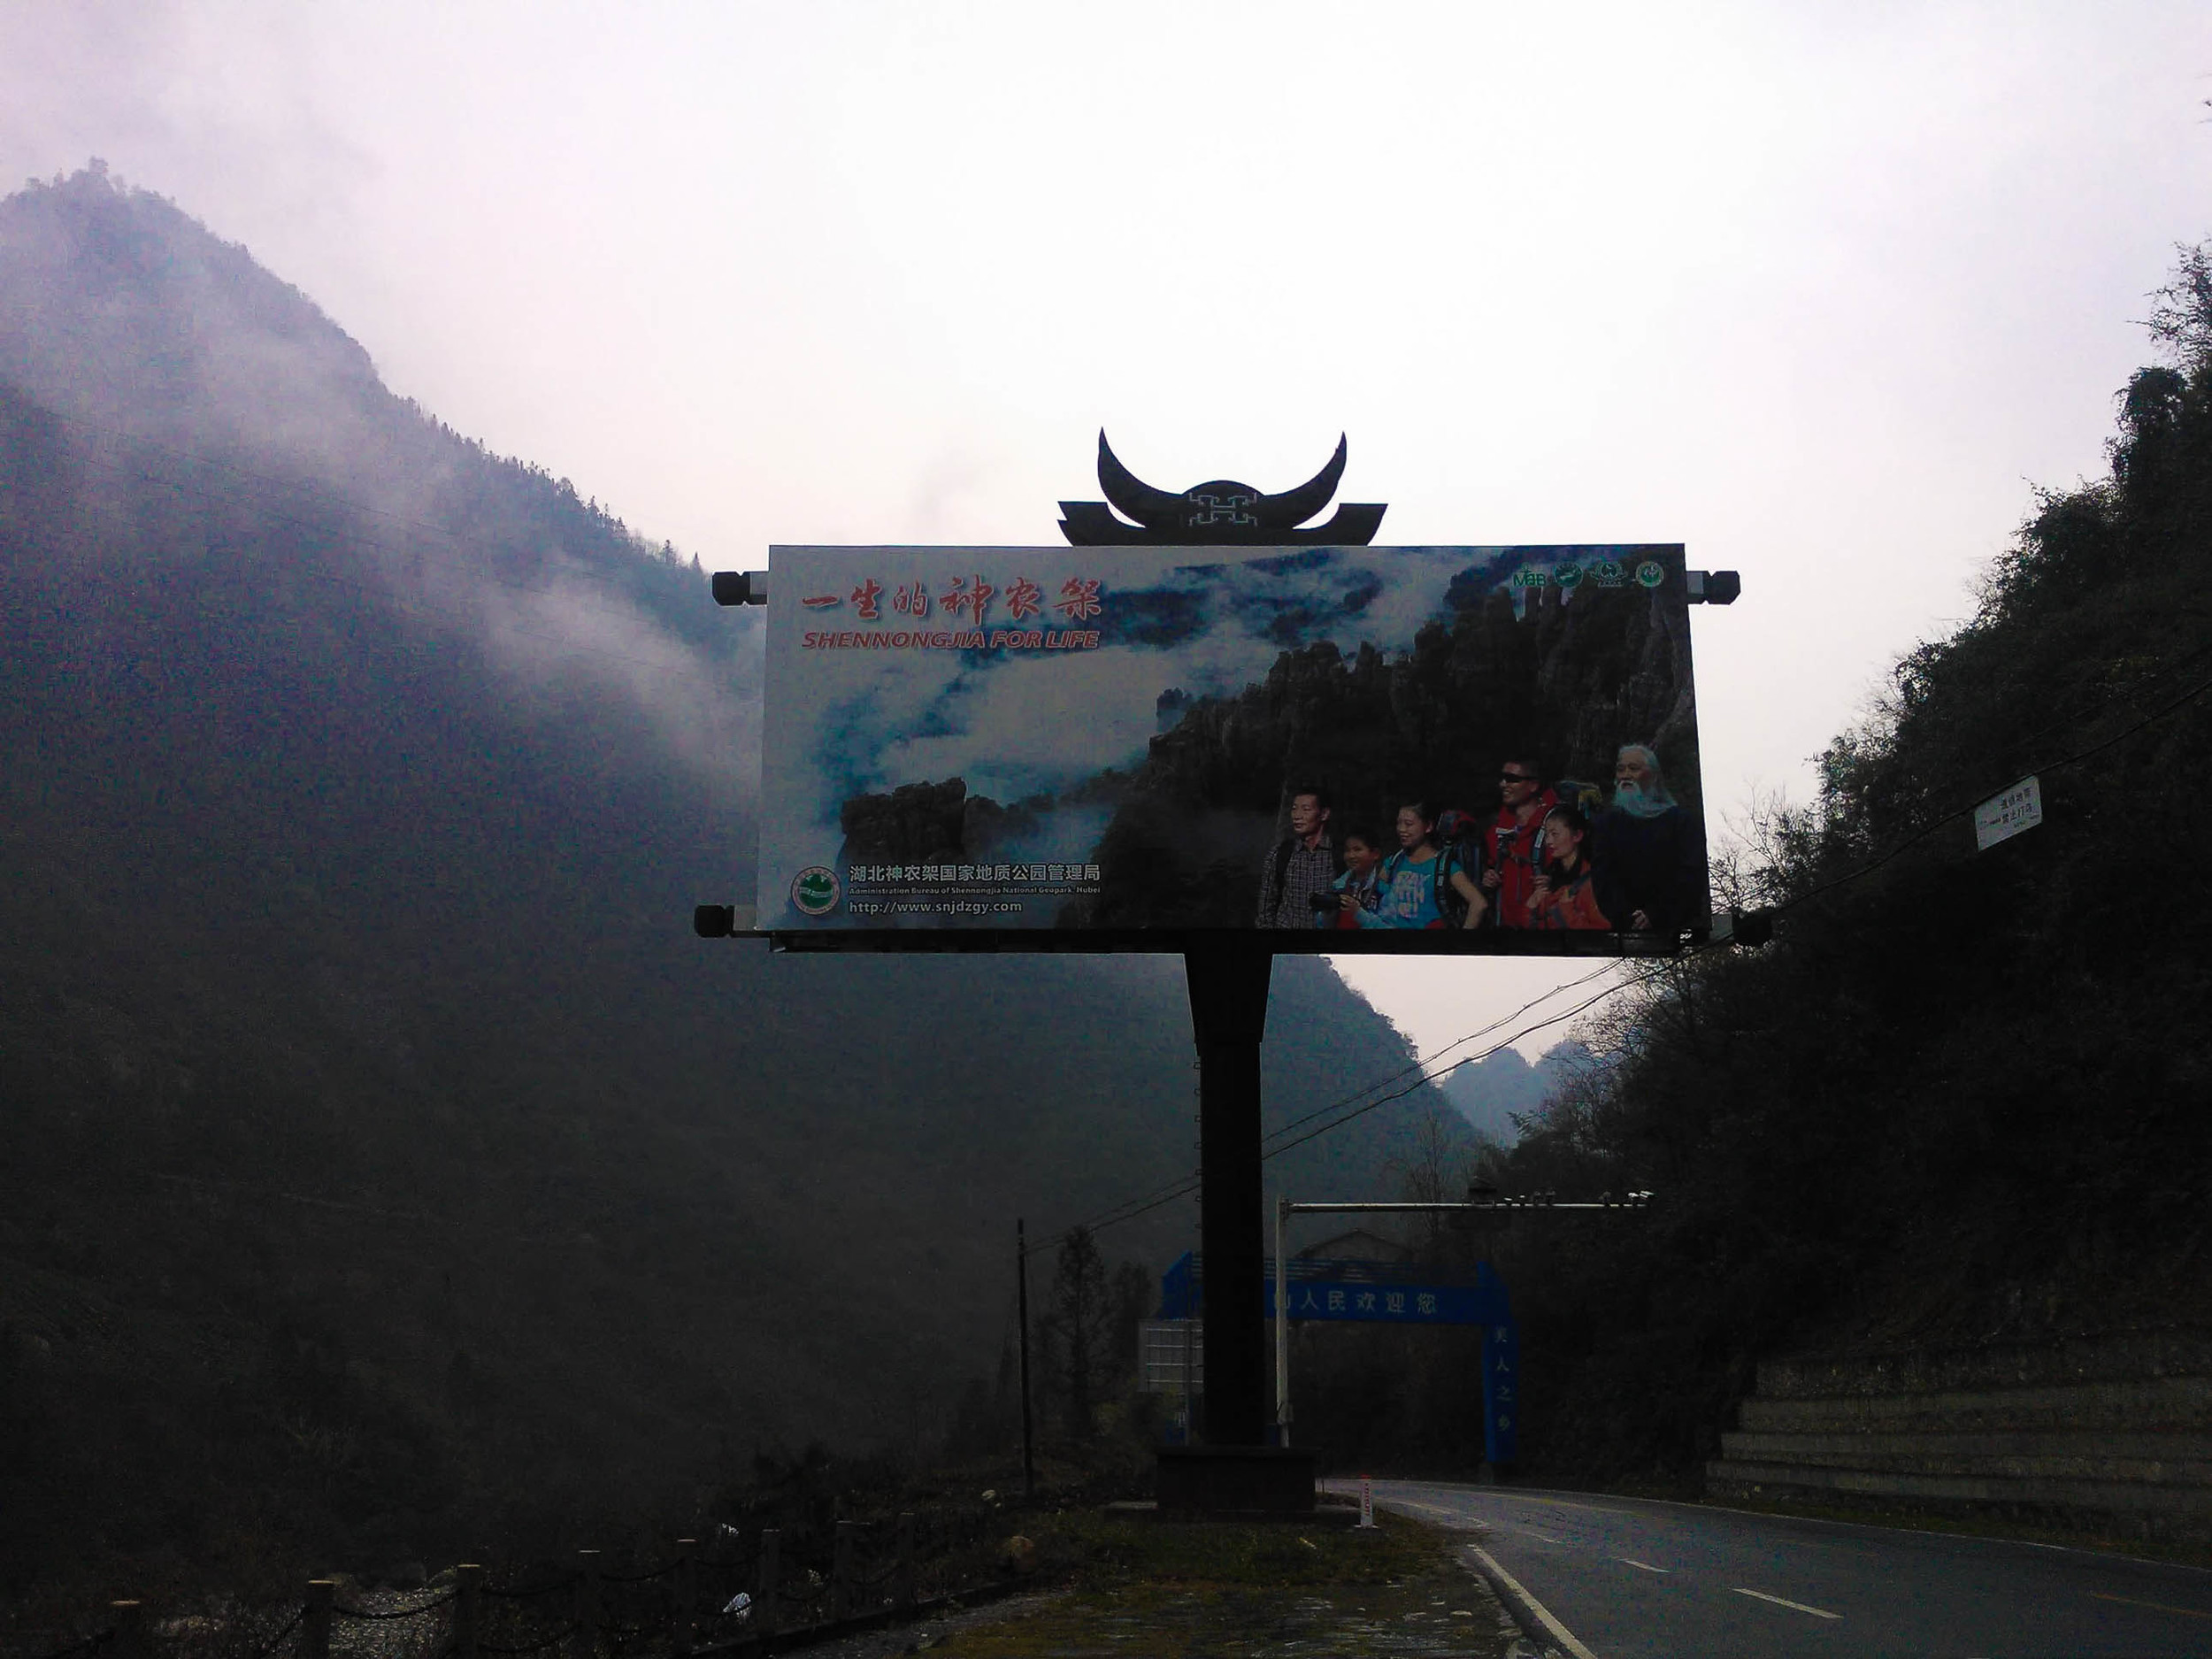 Tourist Sign in Xin Shan on the way to Shennongjia